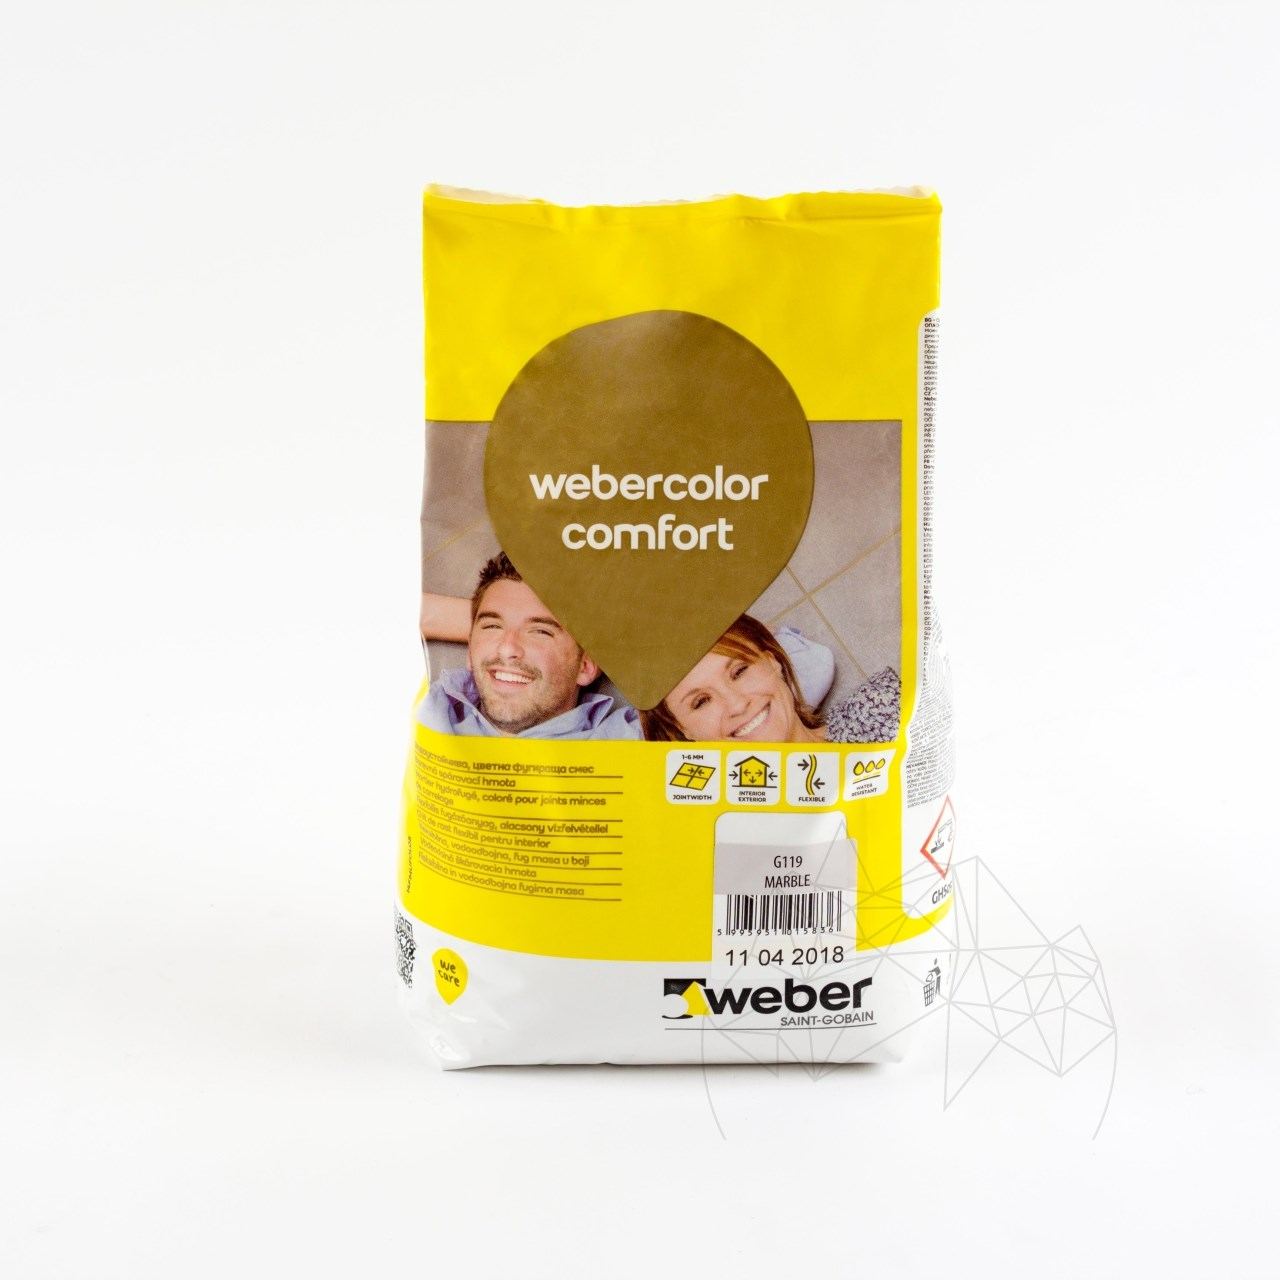 Weber Color Perfect Almond 5 KG - Flexible wall & floor grout